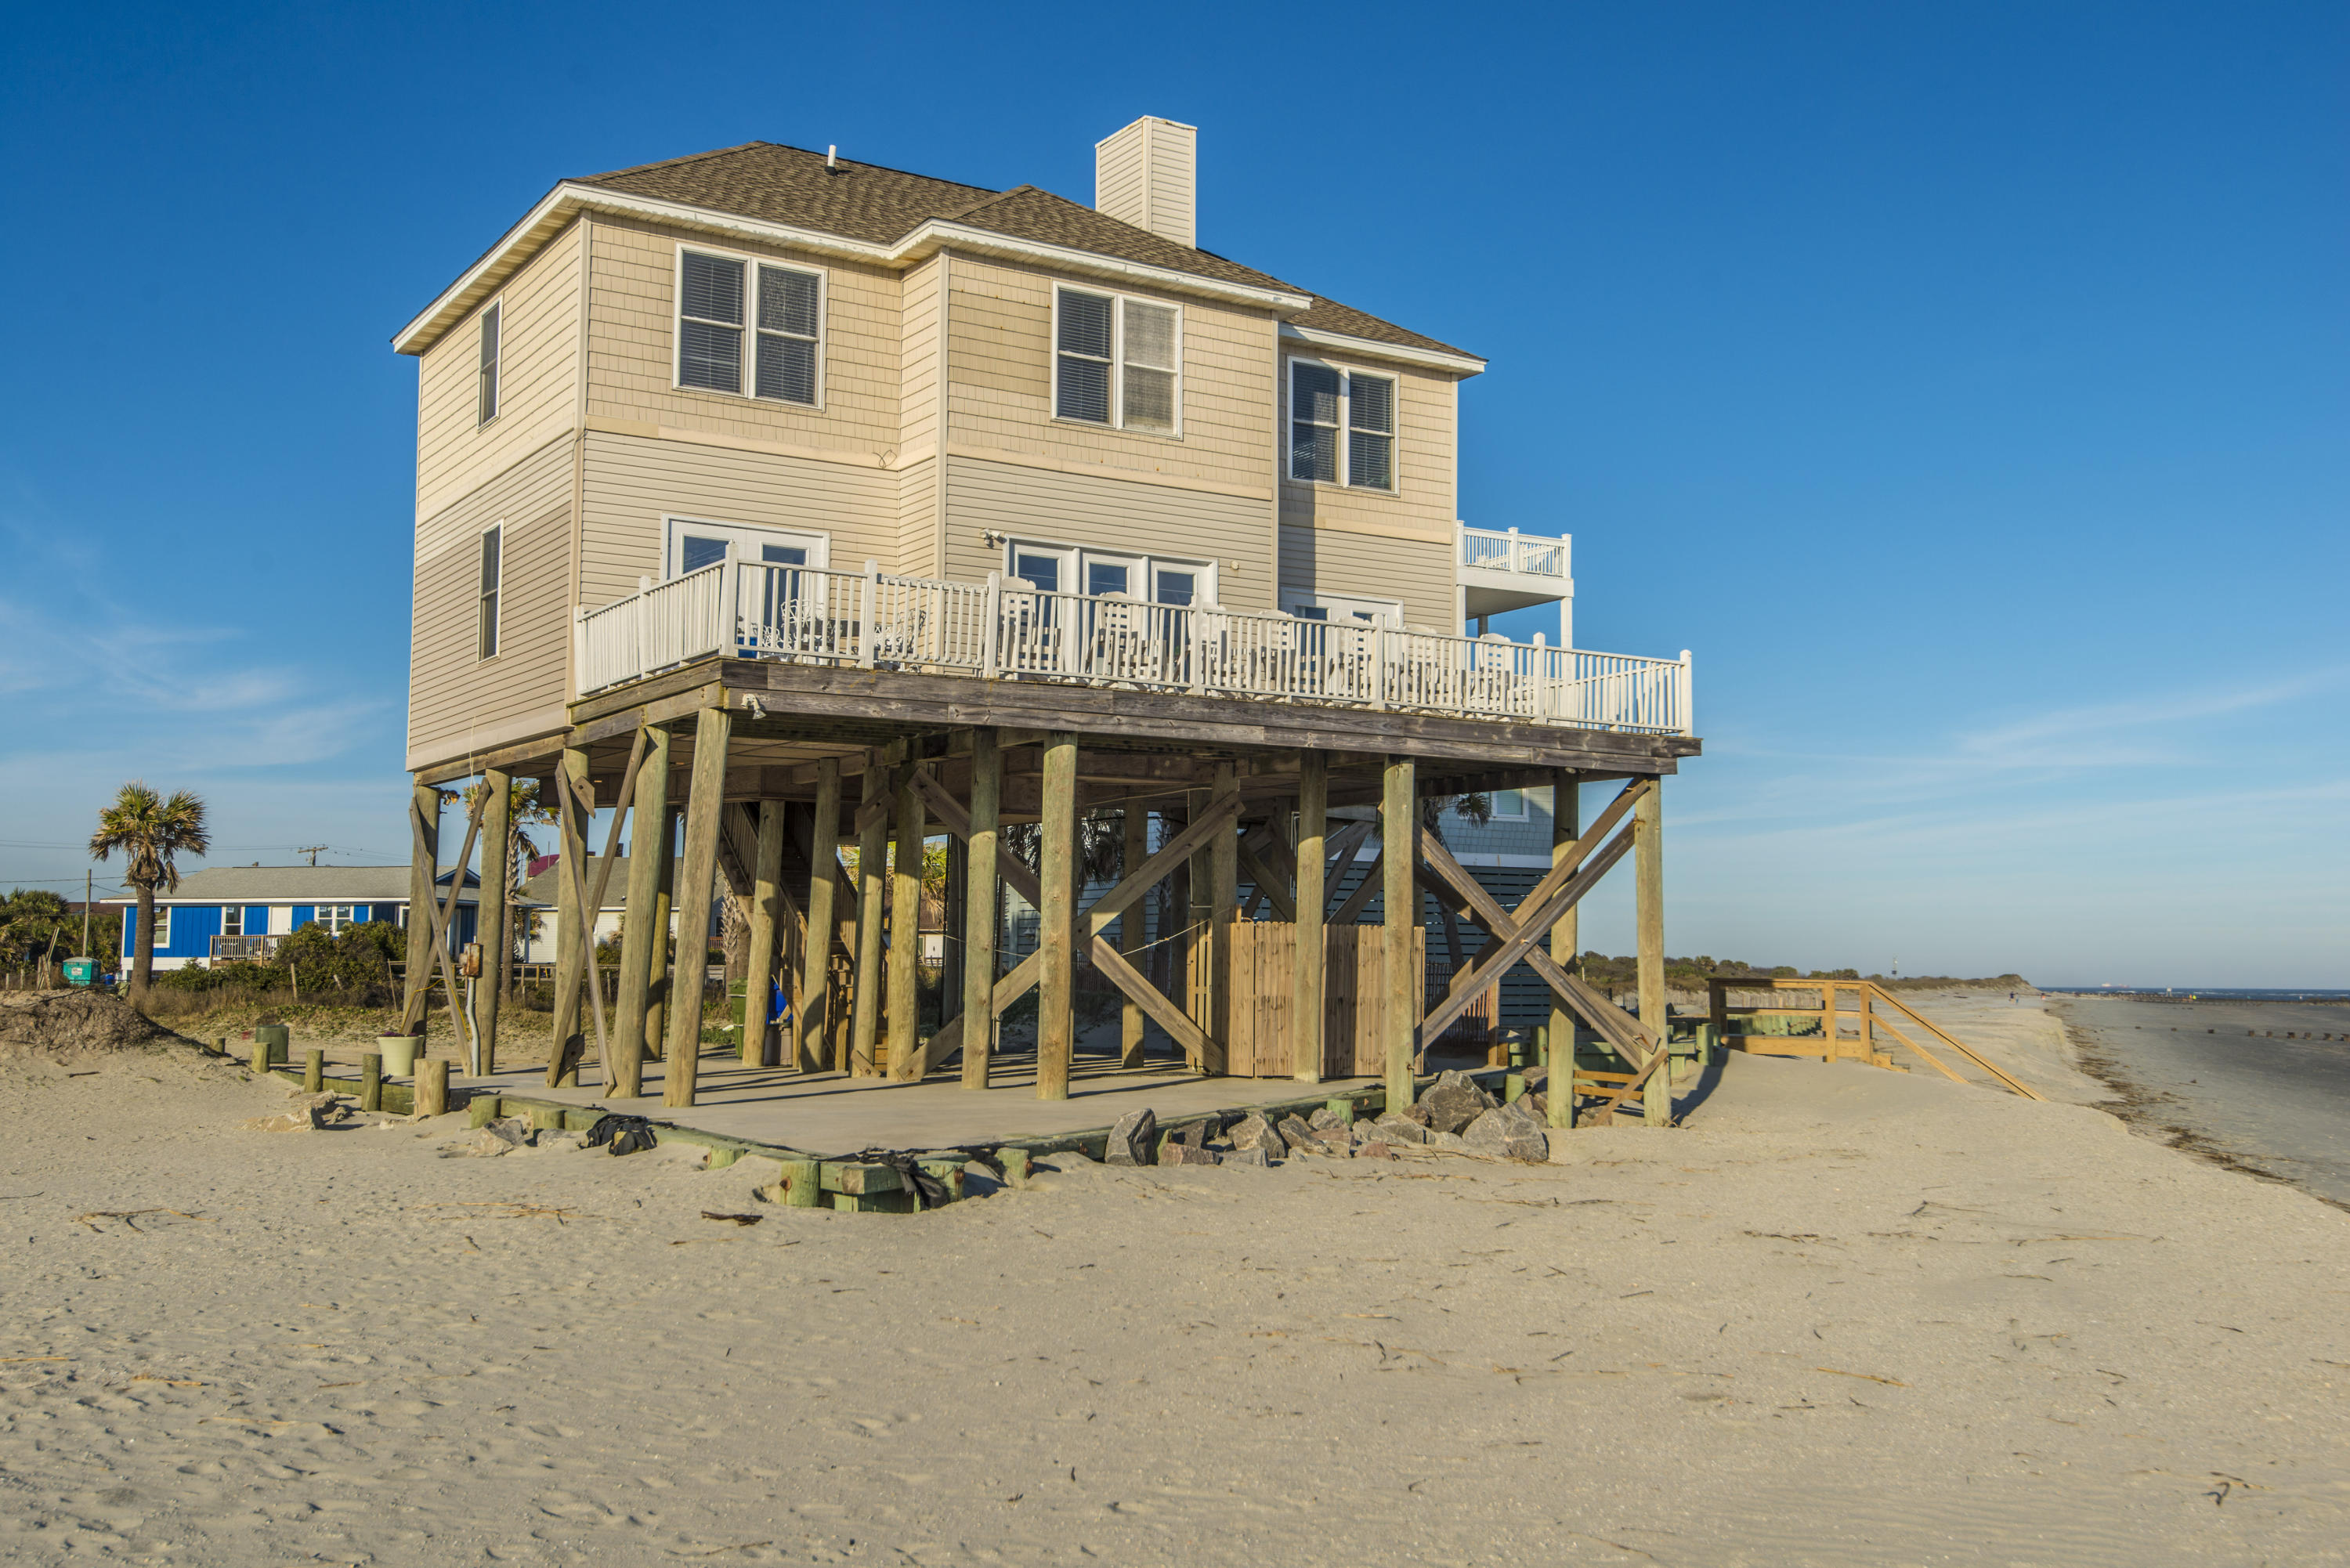 2 Sumter Drive Folly Beach $1,000,000.00